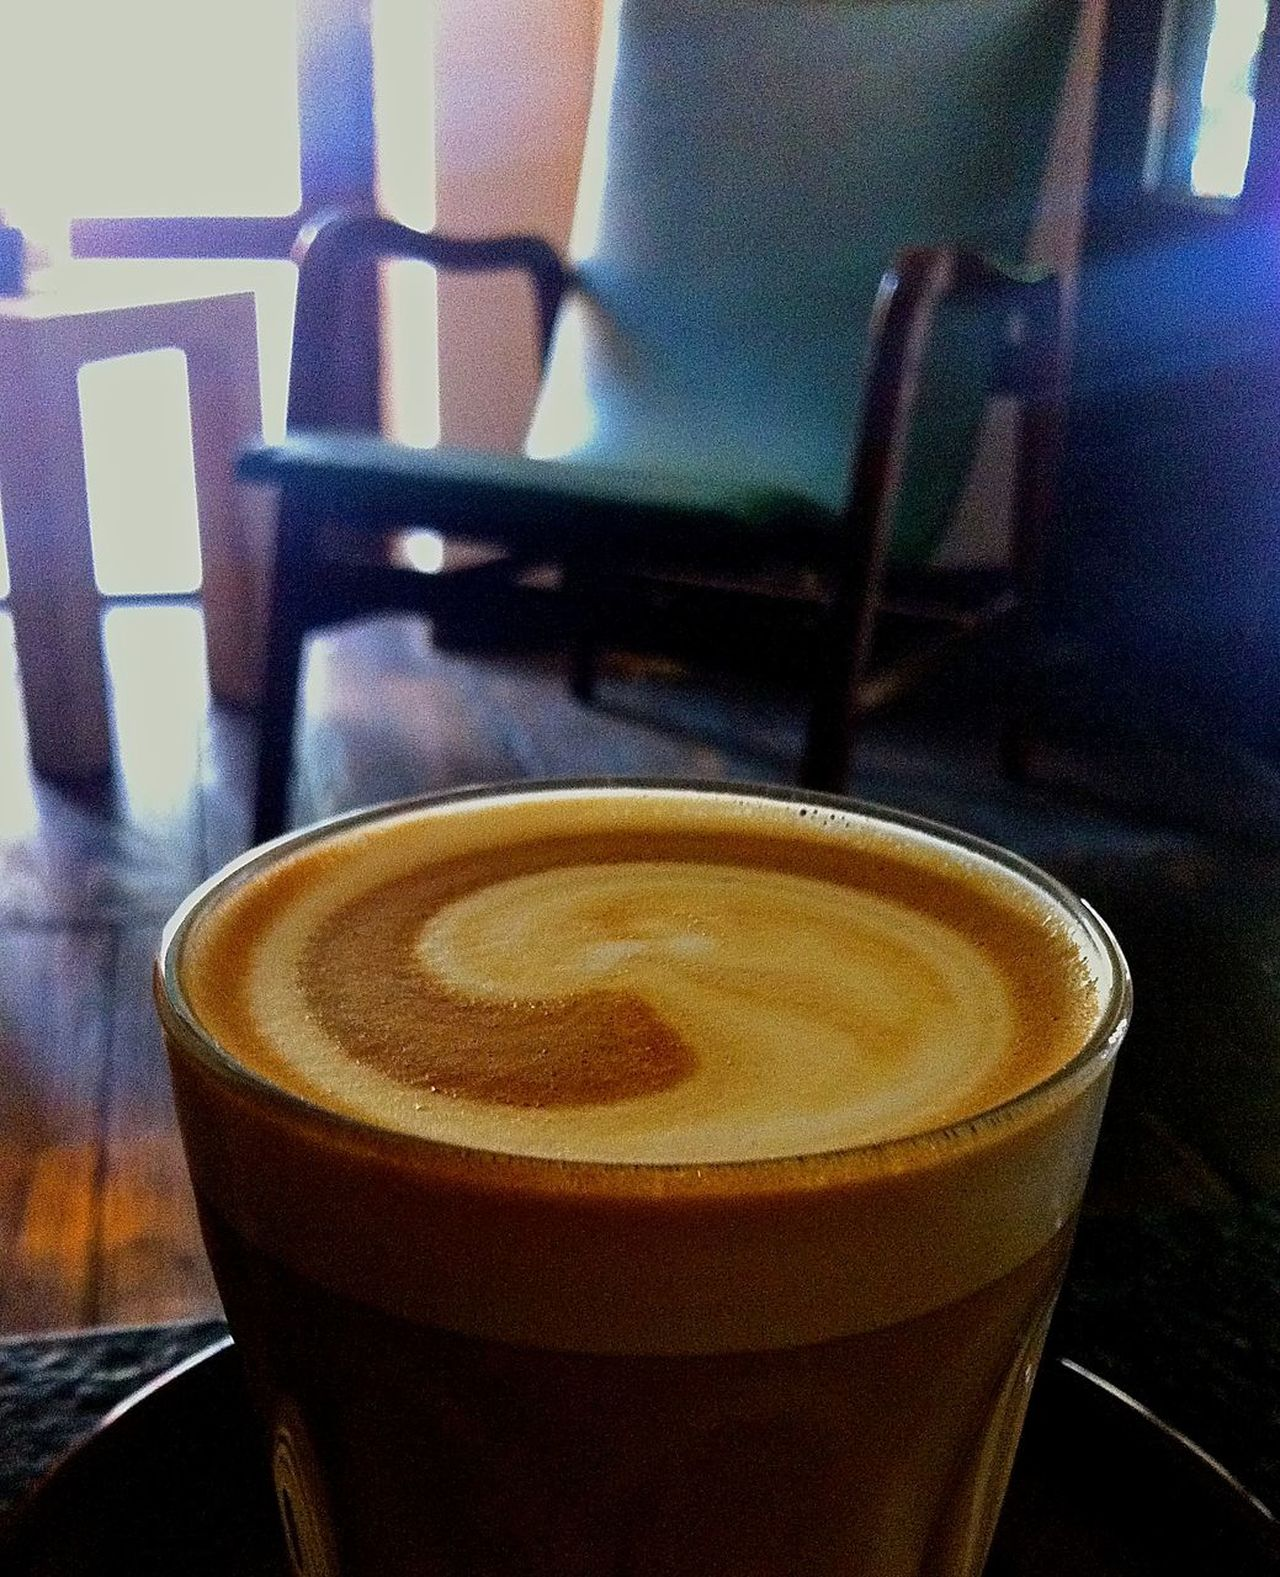 Cafe Cafe Culture Cafe Culture. Caffeteria Cappuccino Close-up Coffee - Drink Coffee Culture Coffee Cup Coffee Shop Drink Food And Drink Froth Art Frothy Drink Indoors  No People Quiet Moments Refreshment Relaxing Moments Silent Moment